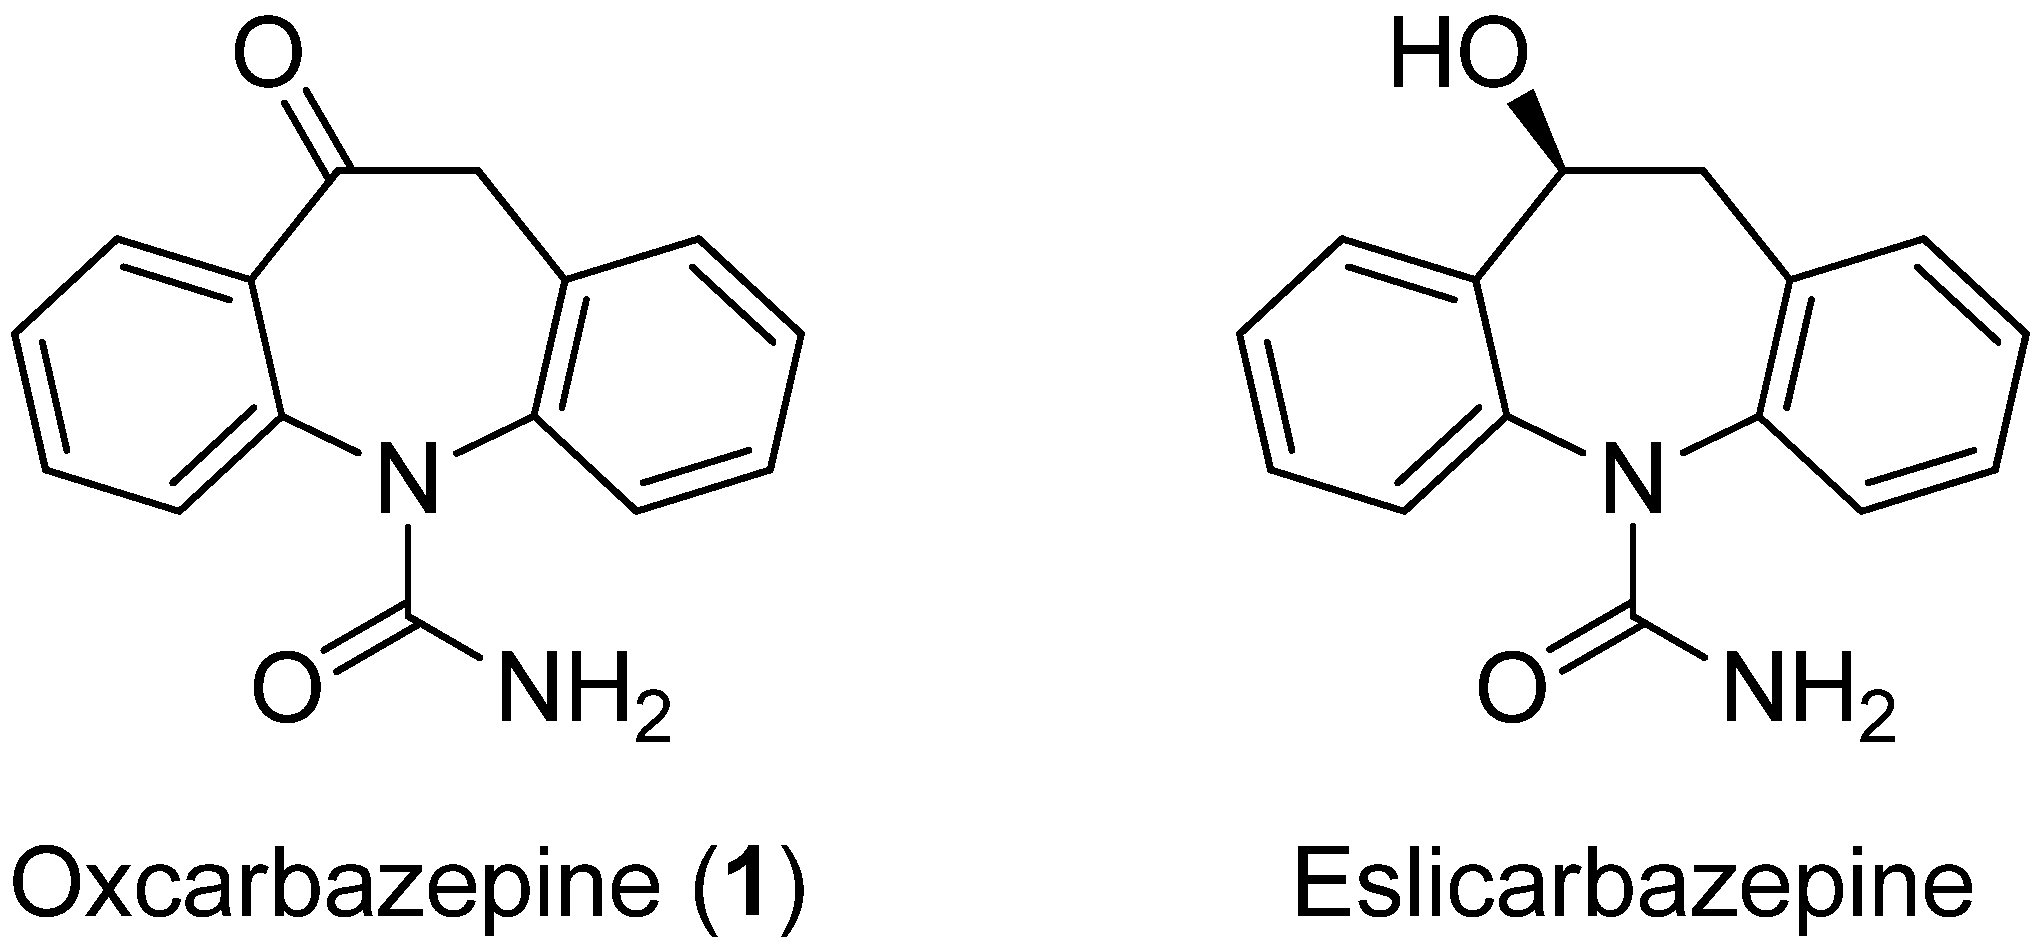 oxcarbazepine structure activity relationship of selegiline